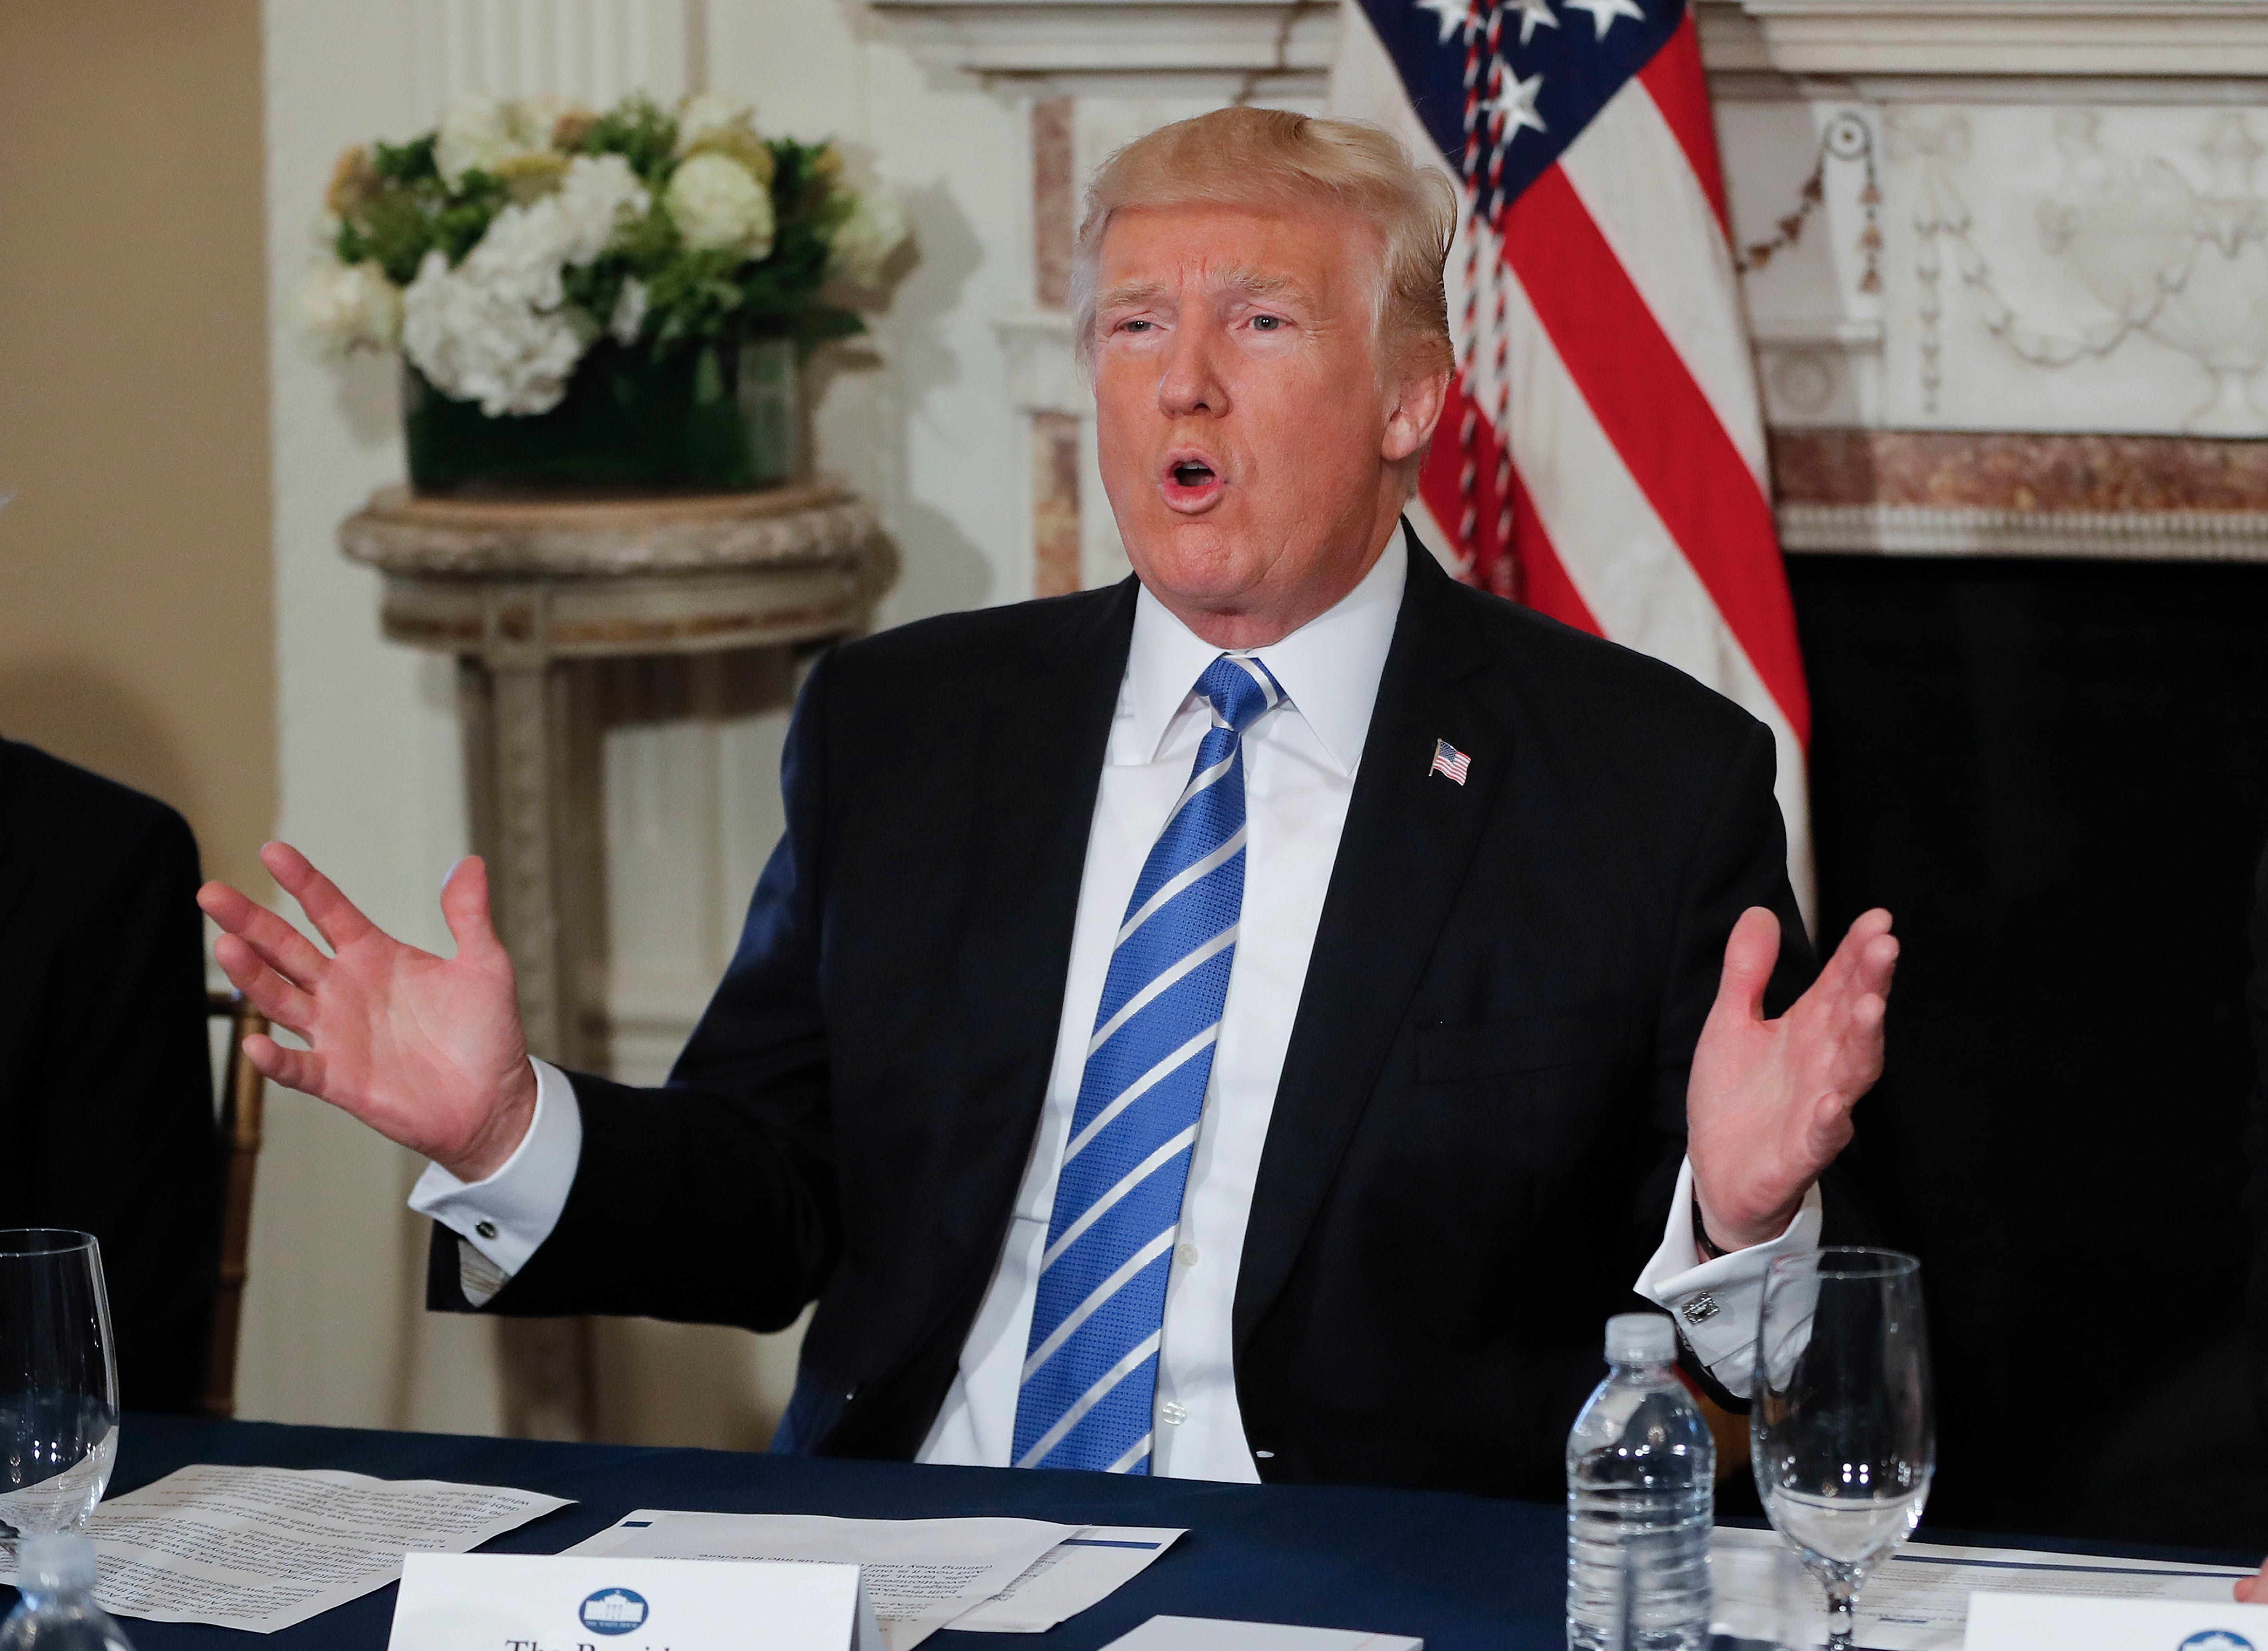 President Donald Trump gestures as he answers a question regarding the ongoing situation in North Korea, Friday, Aug. 11, 2017, at Trump National Golf Club in Bedminster, N.J. (AP Photo/Pablo Martinez Monsivais)